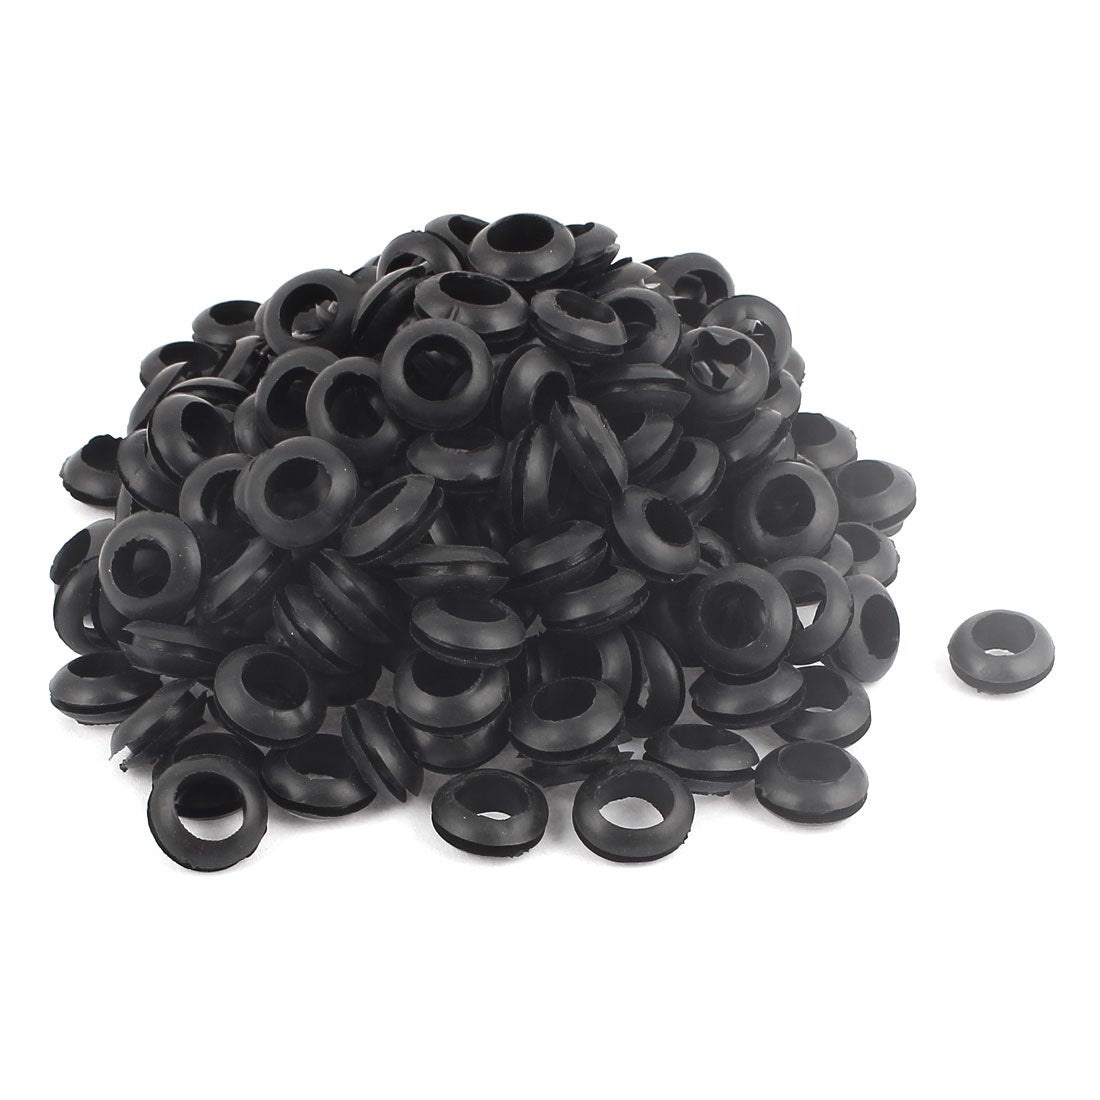 BLACK 10mm Hole Rubber Grommet Double Sided Open Gasket Wiring Cable Cord Ring